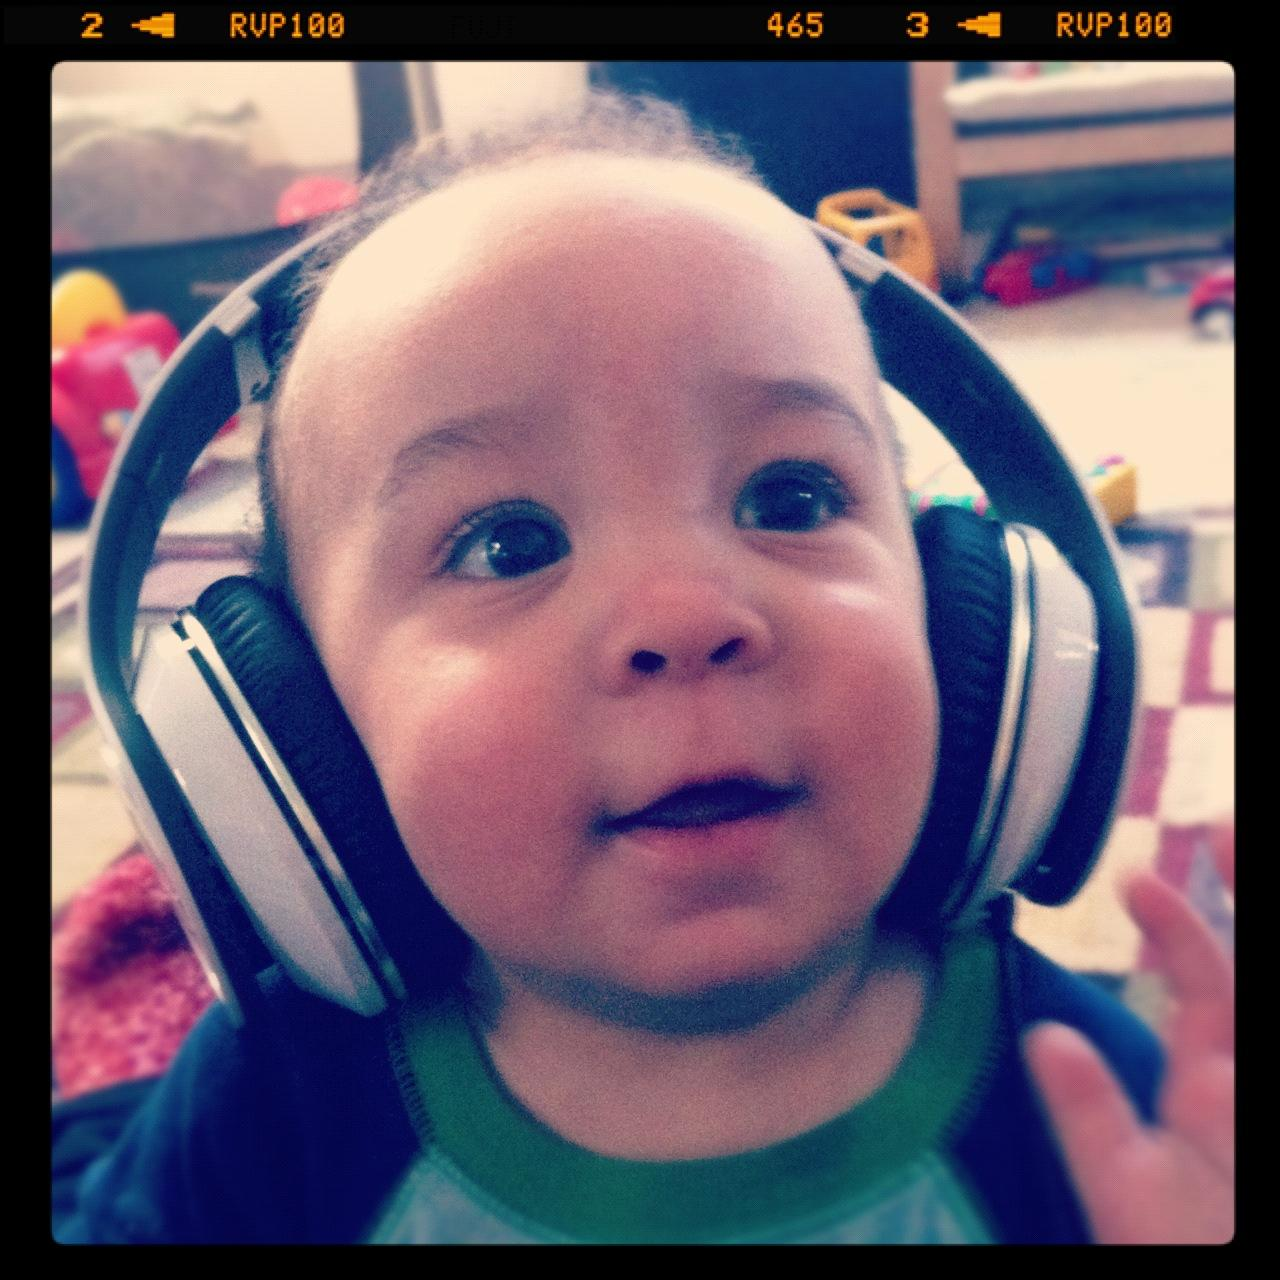 I tried to tell my baby beats aren't that great but he's a slave to style already.....